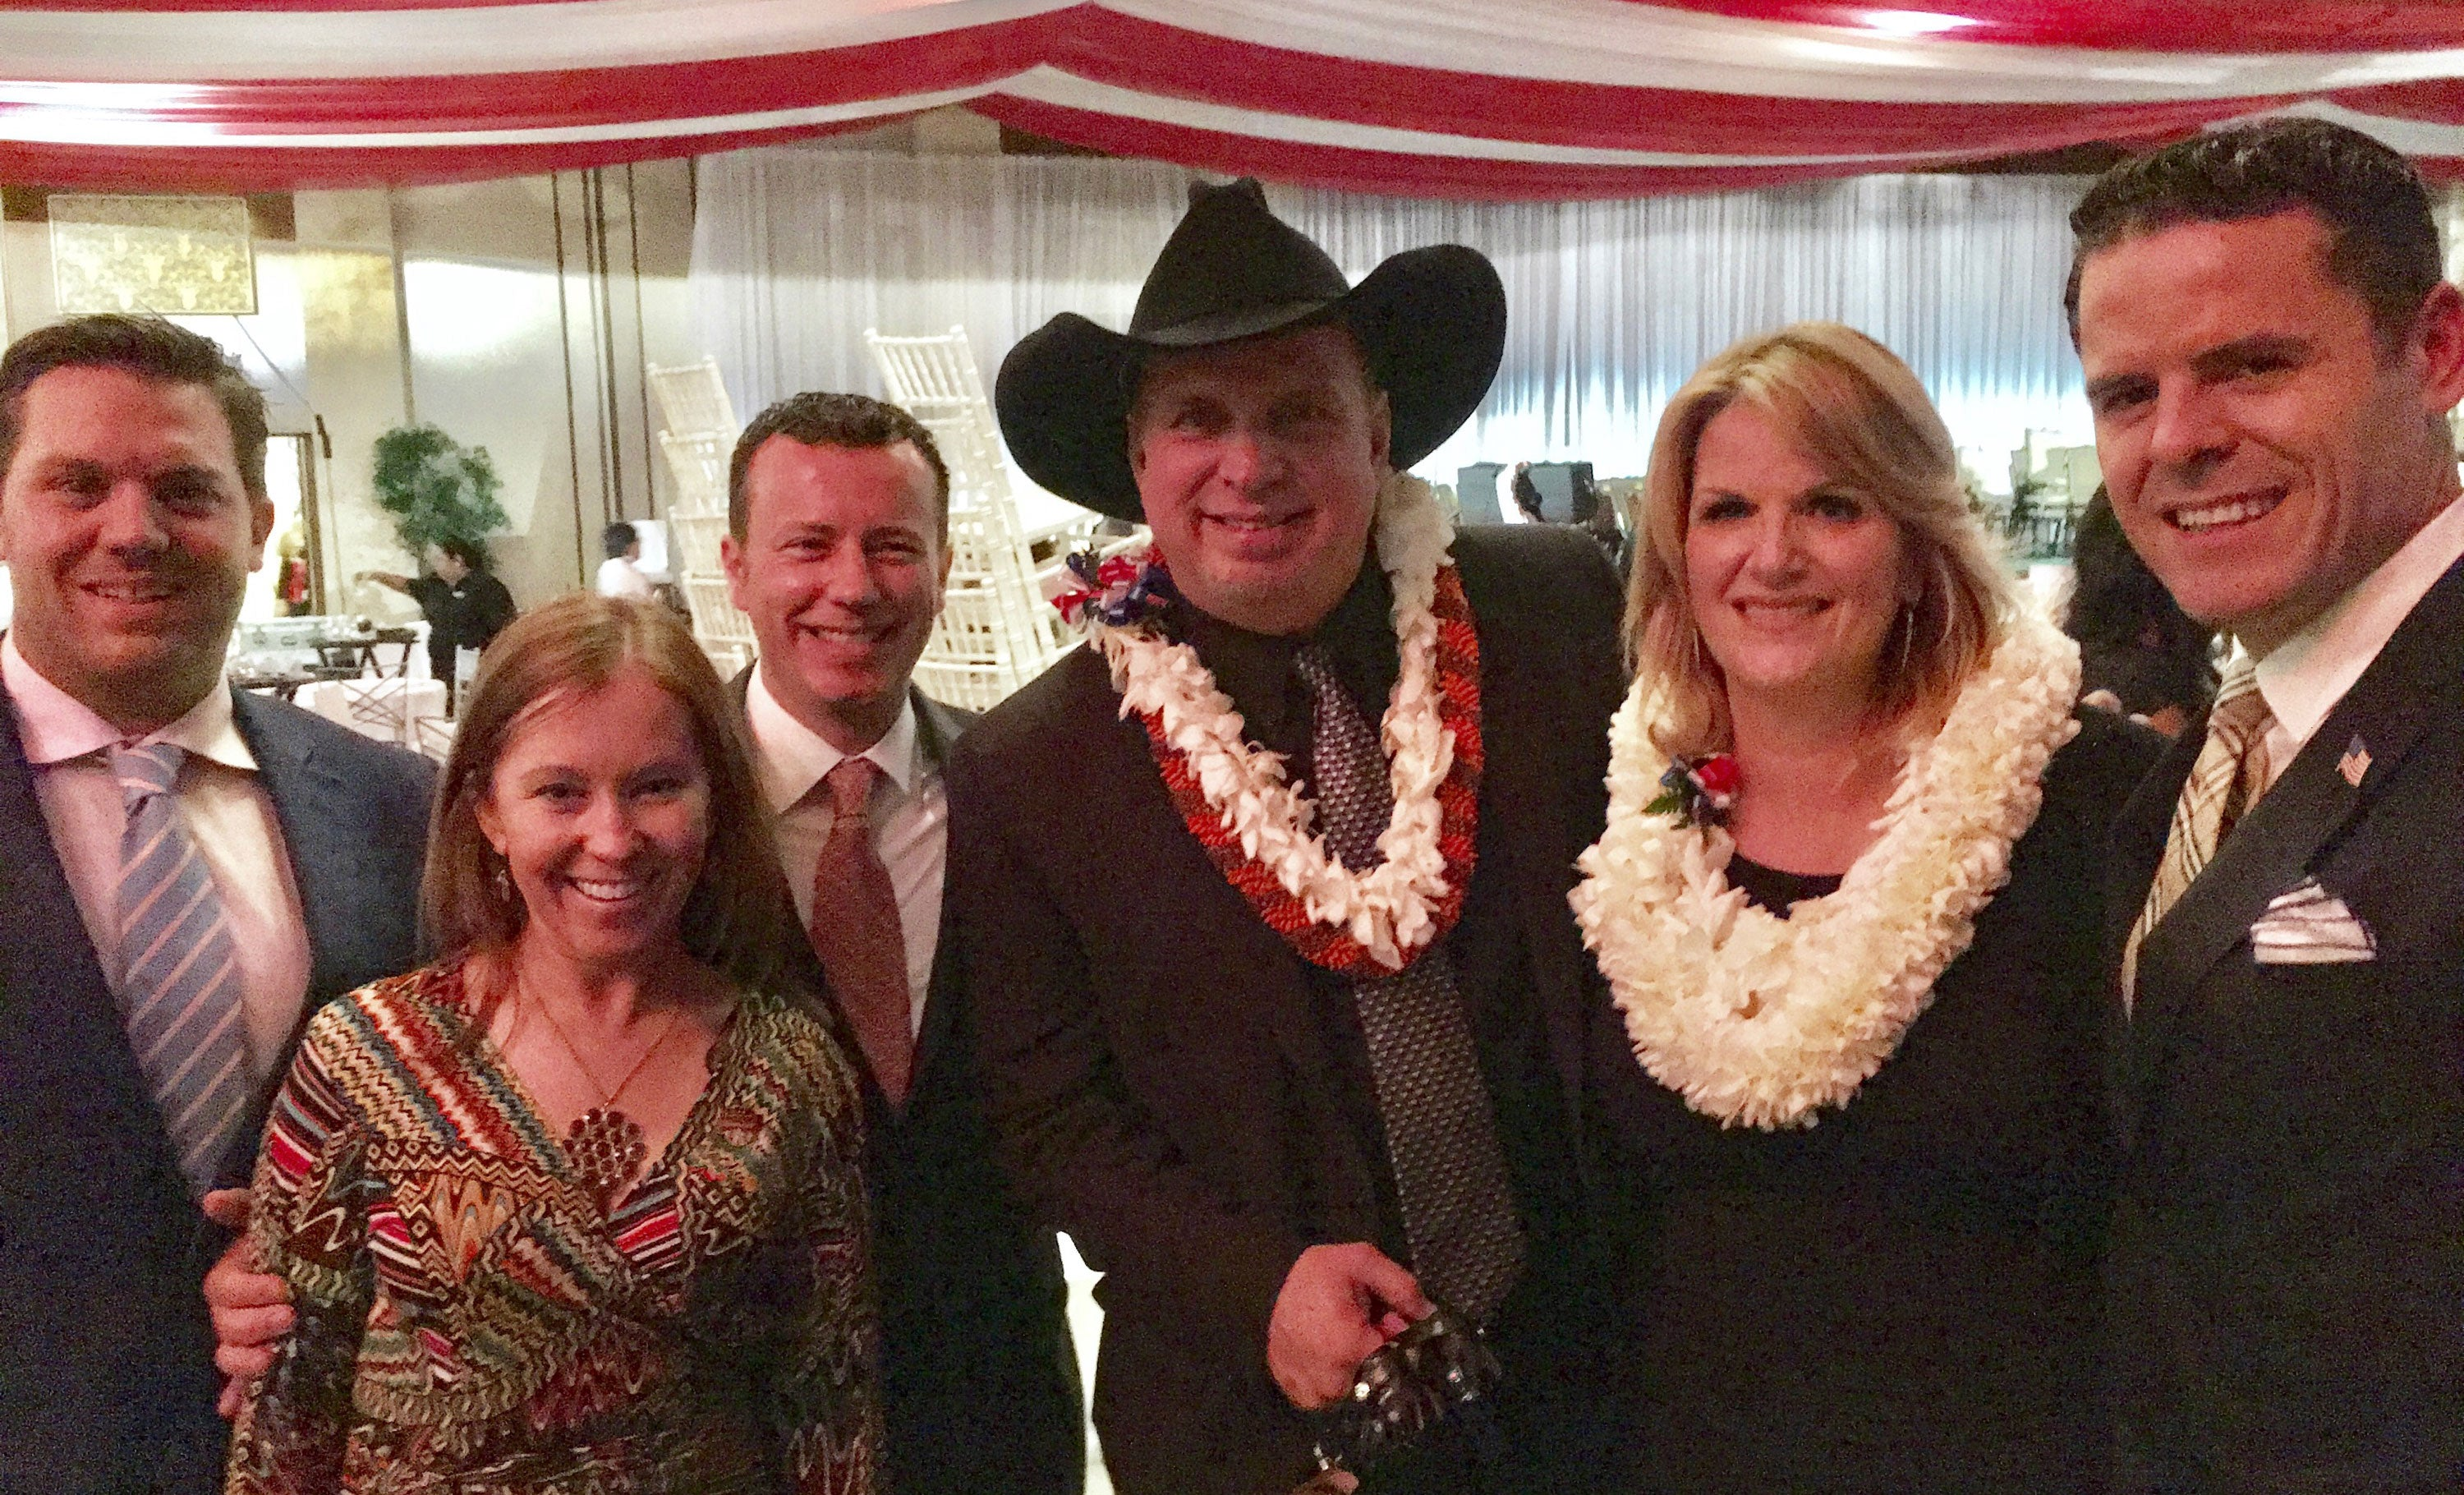 Meeting with Garth Brooks and Trisha Yearwood